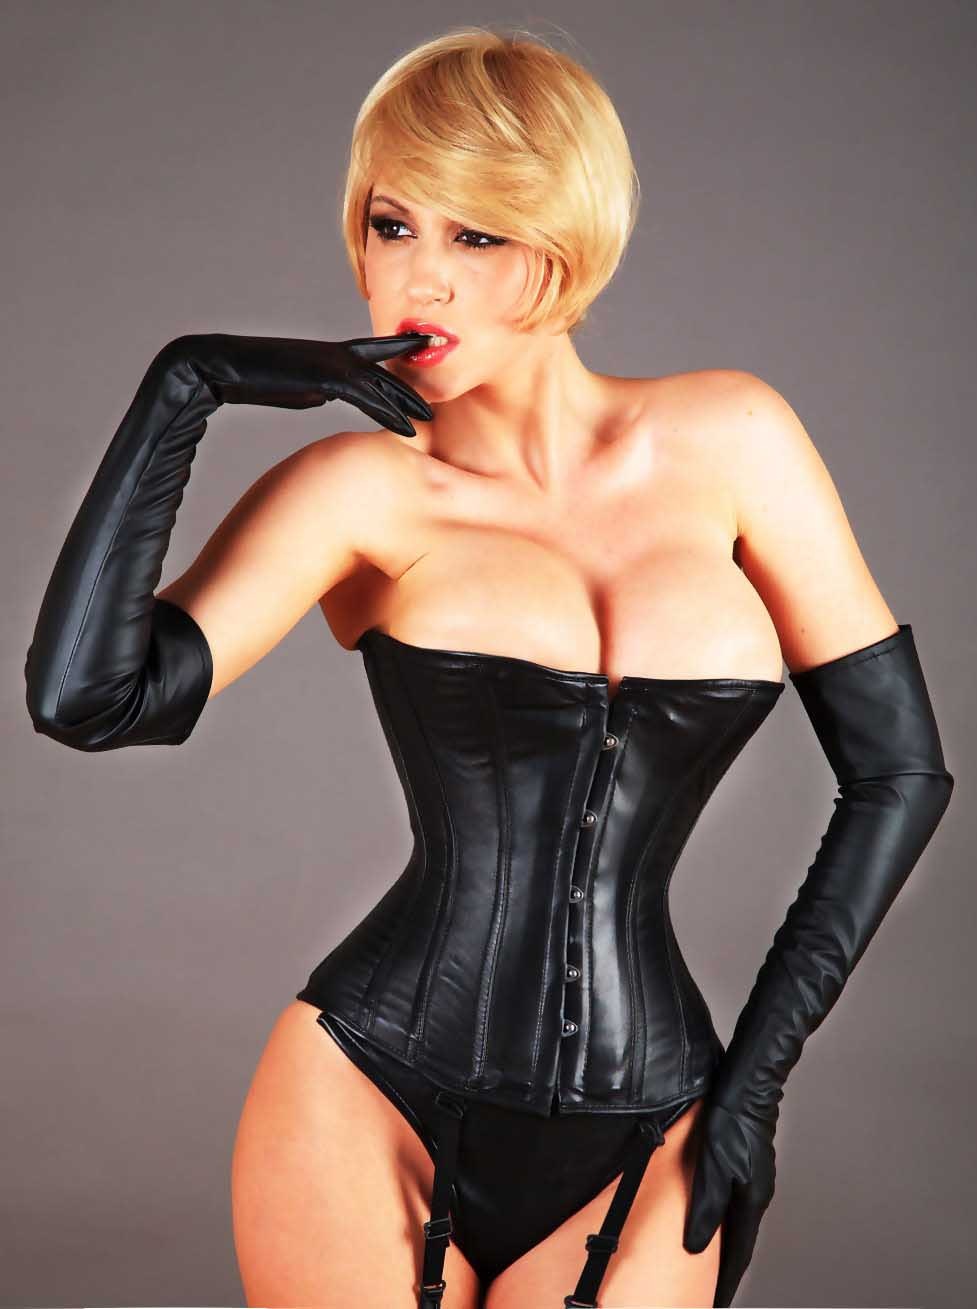 women wearing latex porn